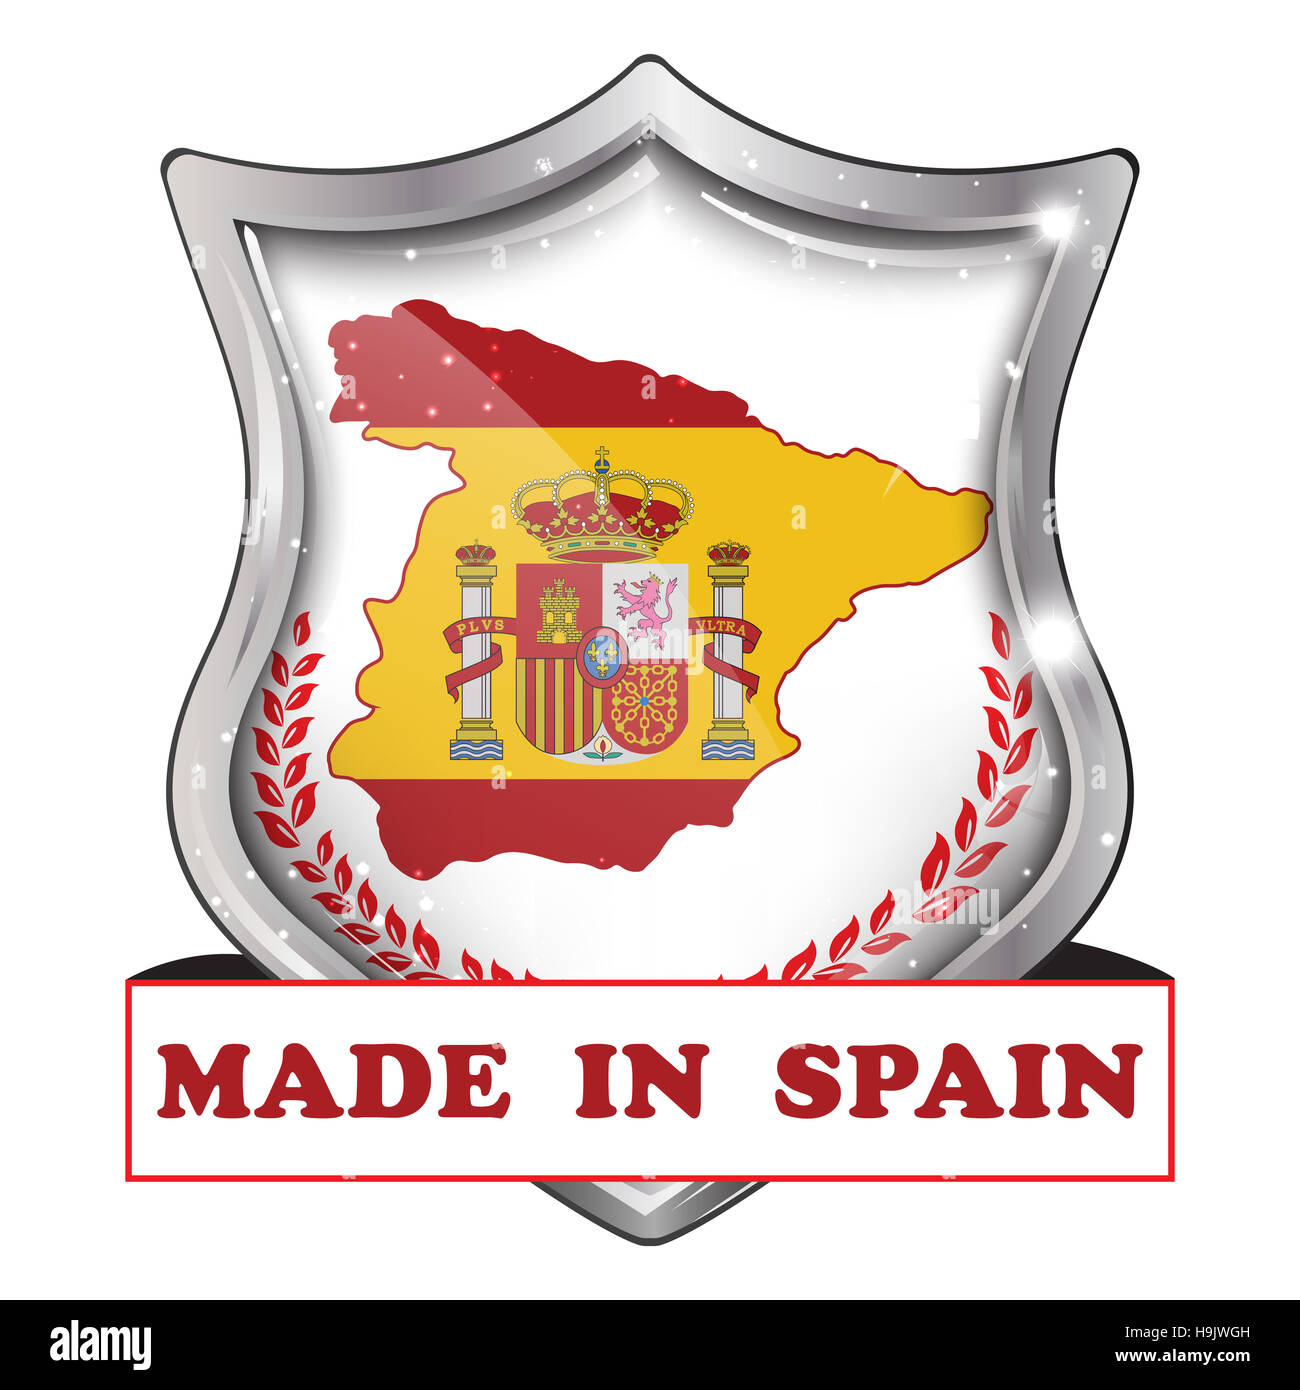 Made in Spain, Best quality because we care   business commerce ...